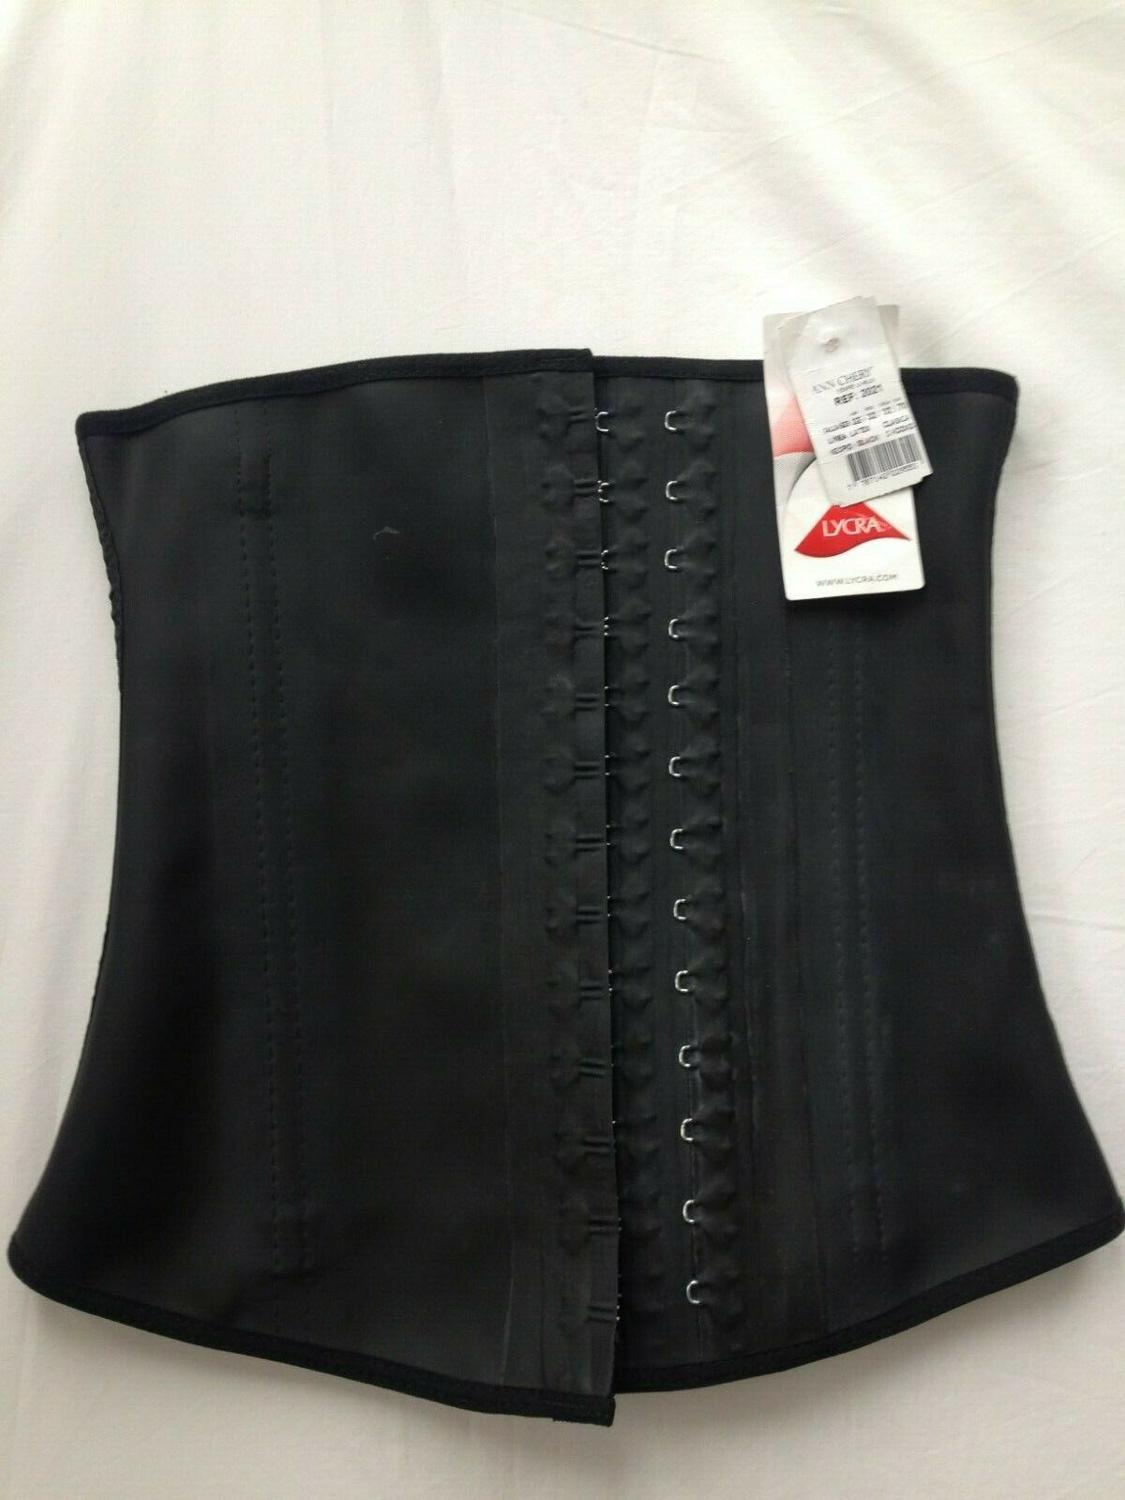 2019 chaud!! Gros femmes minceur corps shaper grande taille sexy body corset chaud shaper taille formation - 5